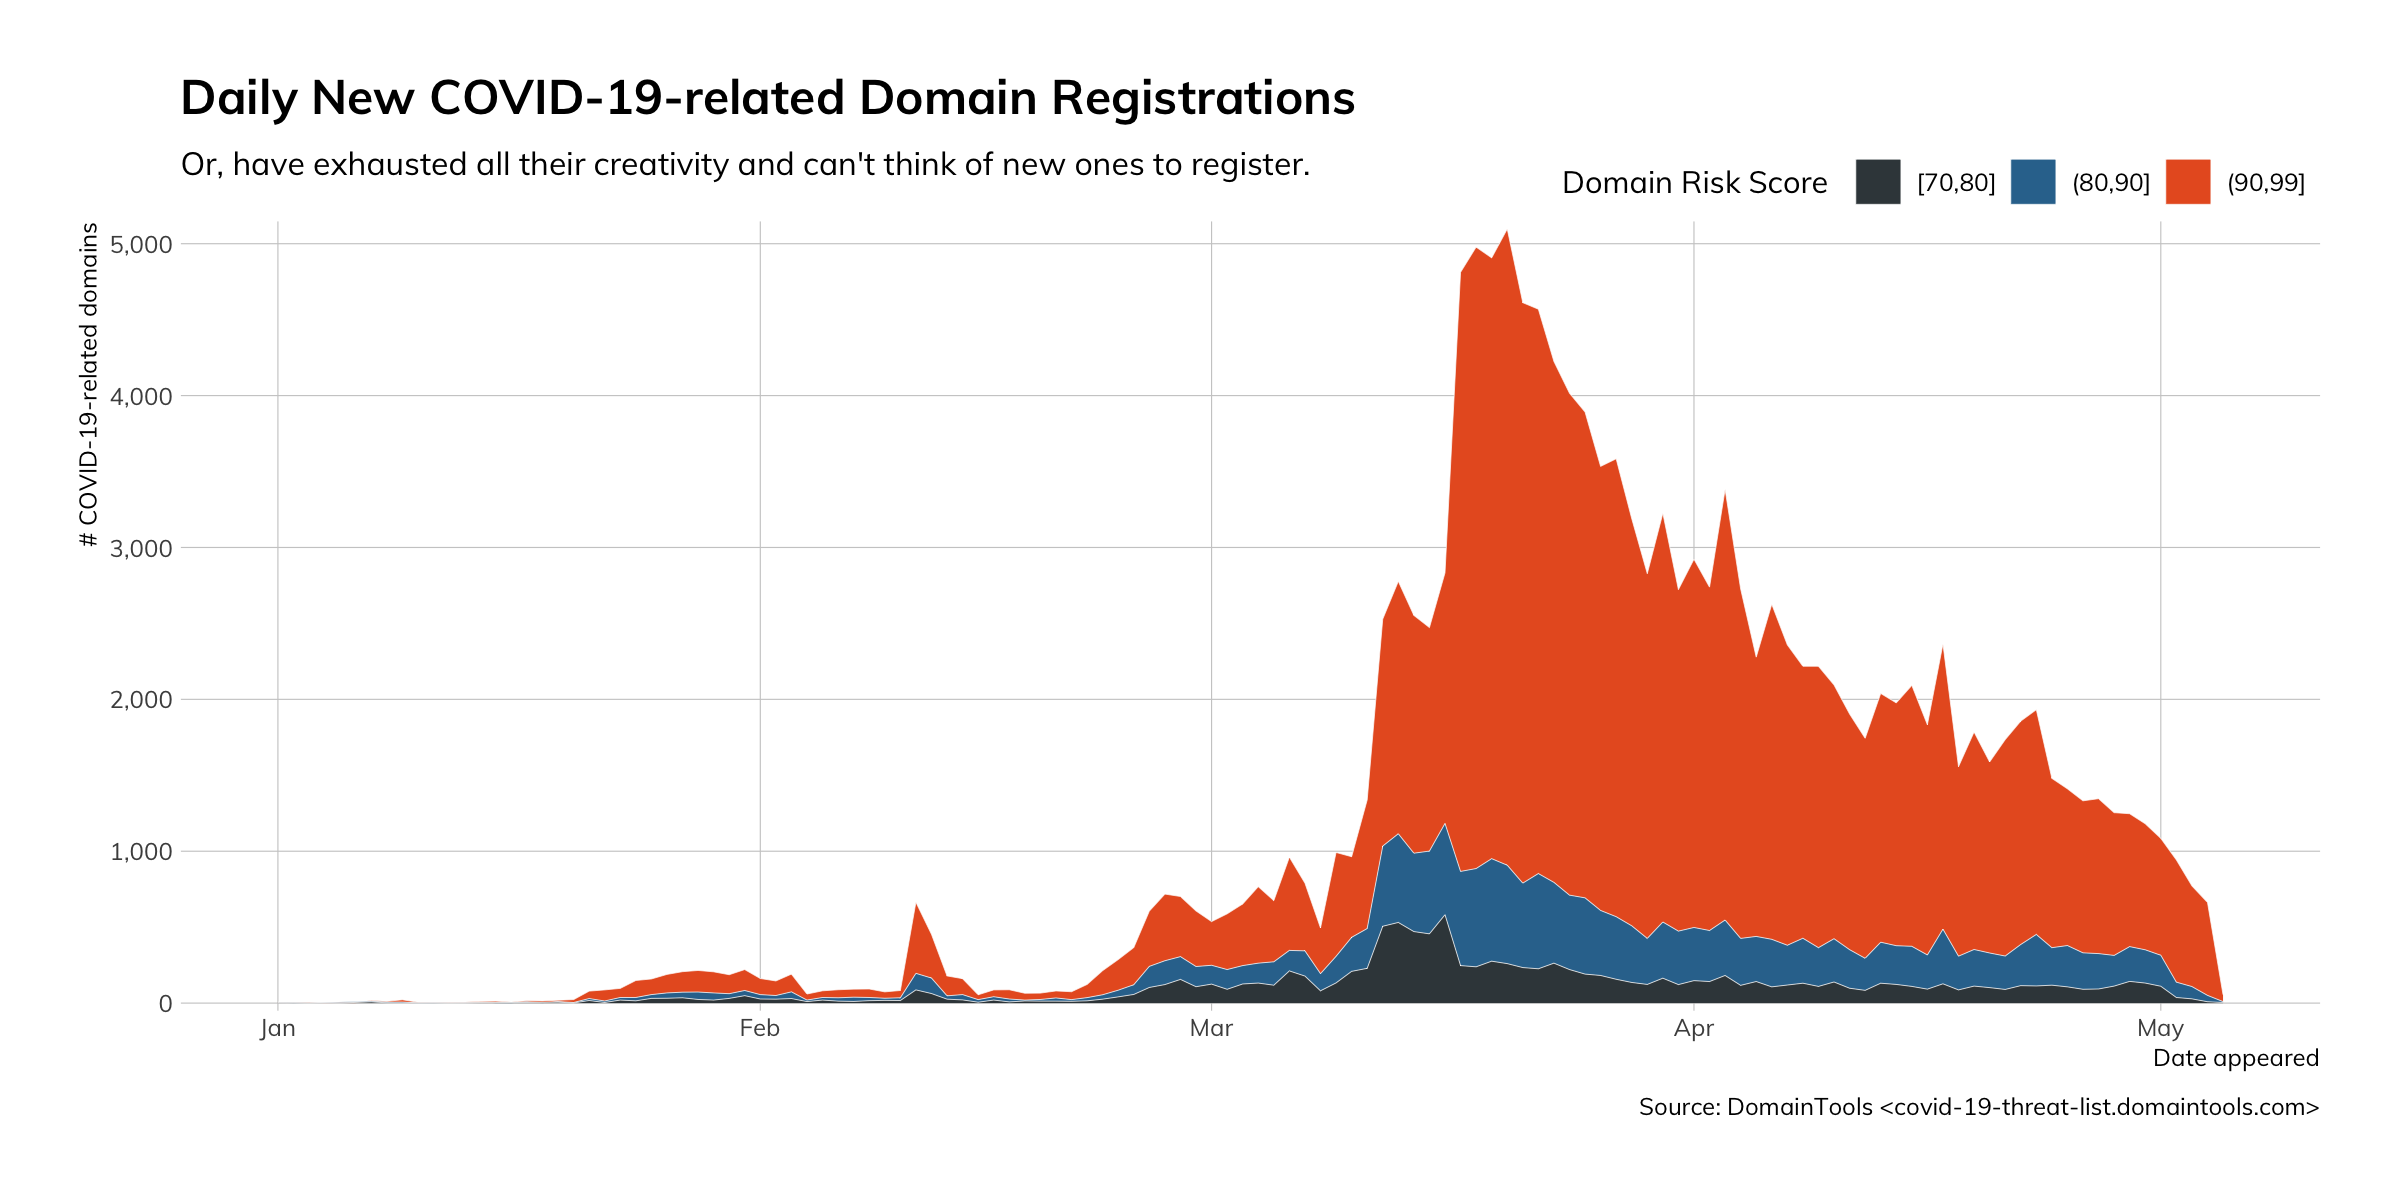 Figure 5: Daily New COVID-19 related Domain Registrations